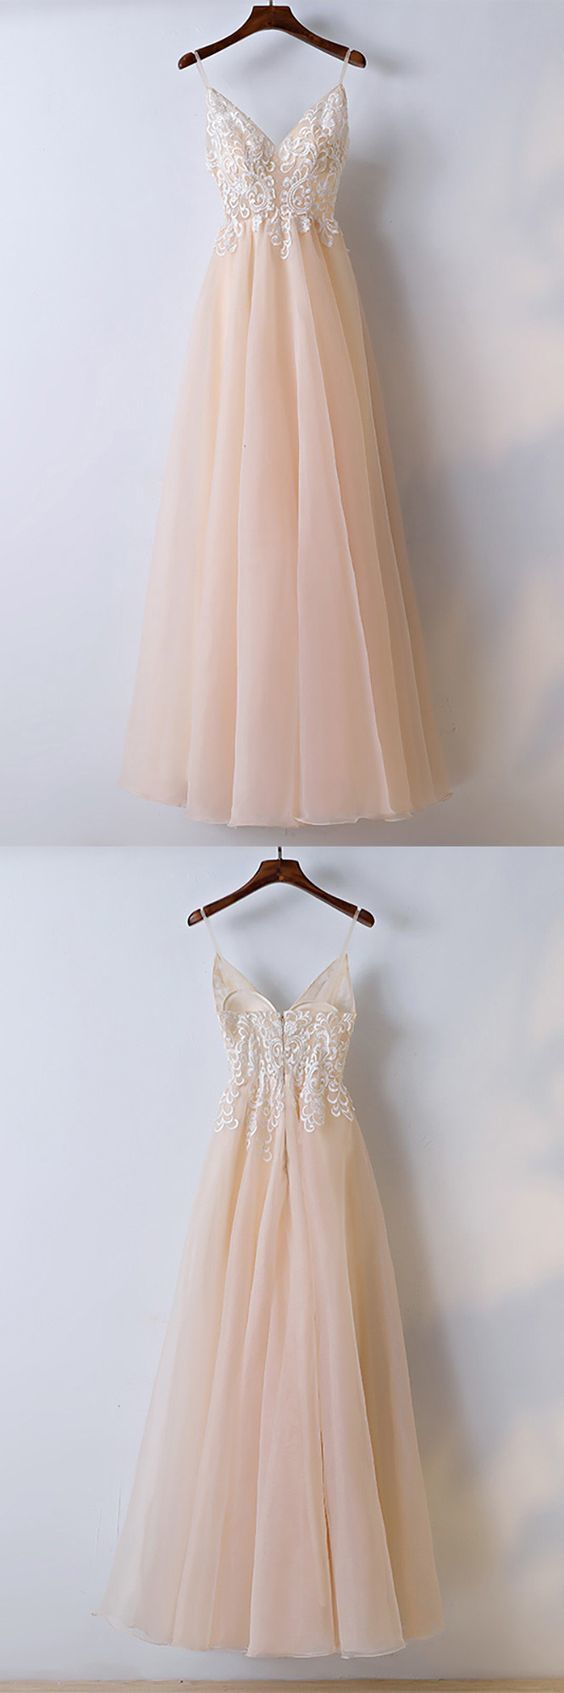 Champagne Lace Long Prom Dress With Spaghetti Straps,Sexy Party Dress,Formal